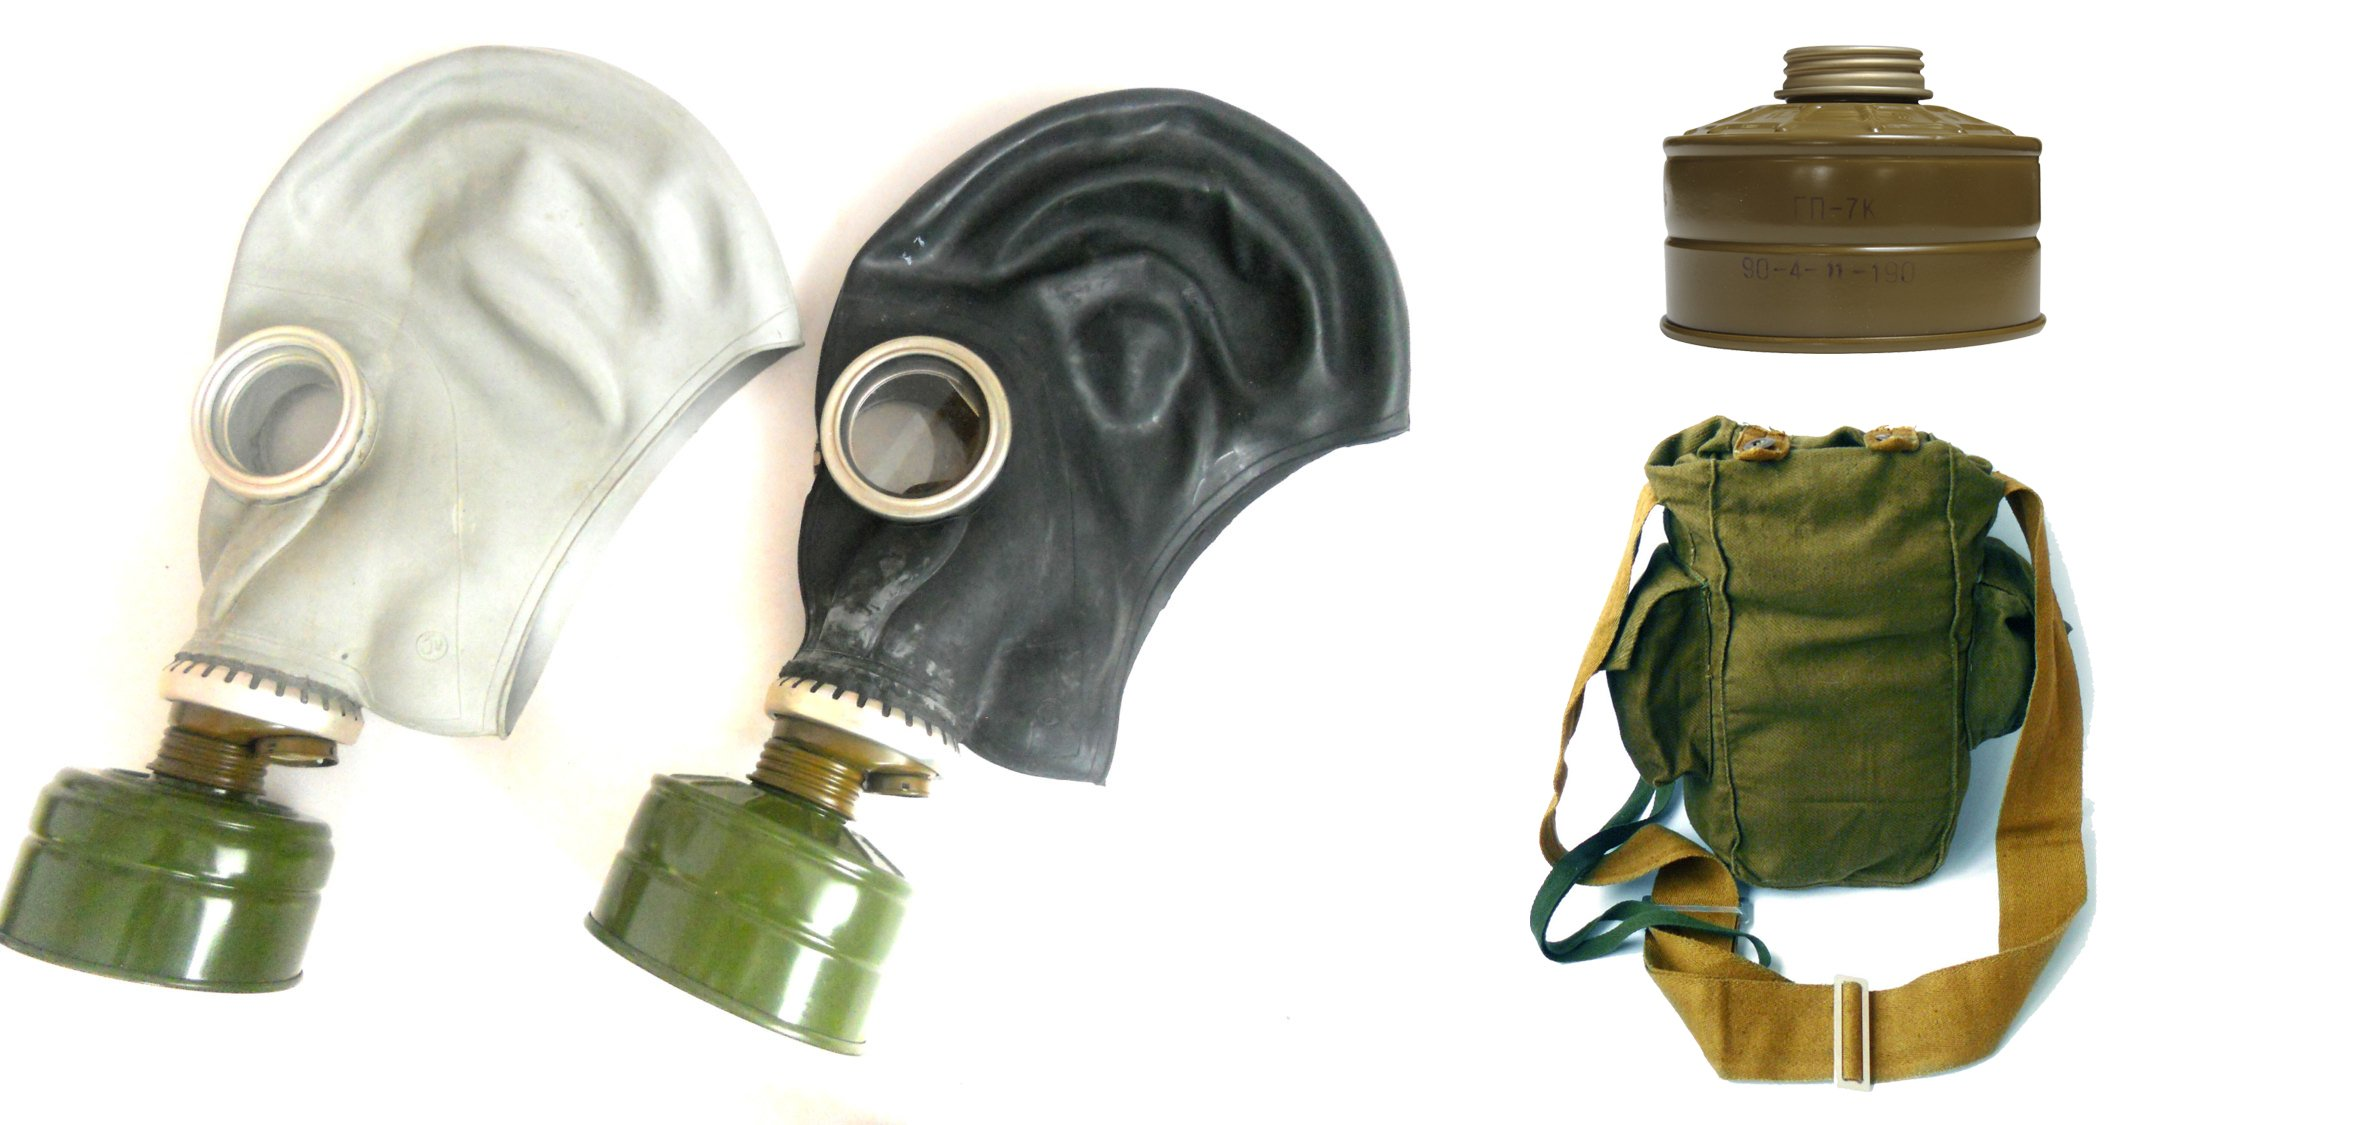 GP-5 Original Soviet Civilian Protective Gas Mask (activated Charcoal filter and bag included) (Large, black)